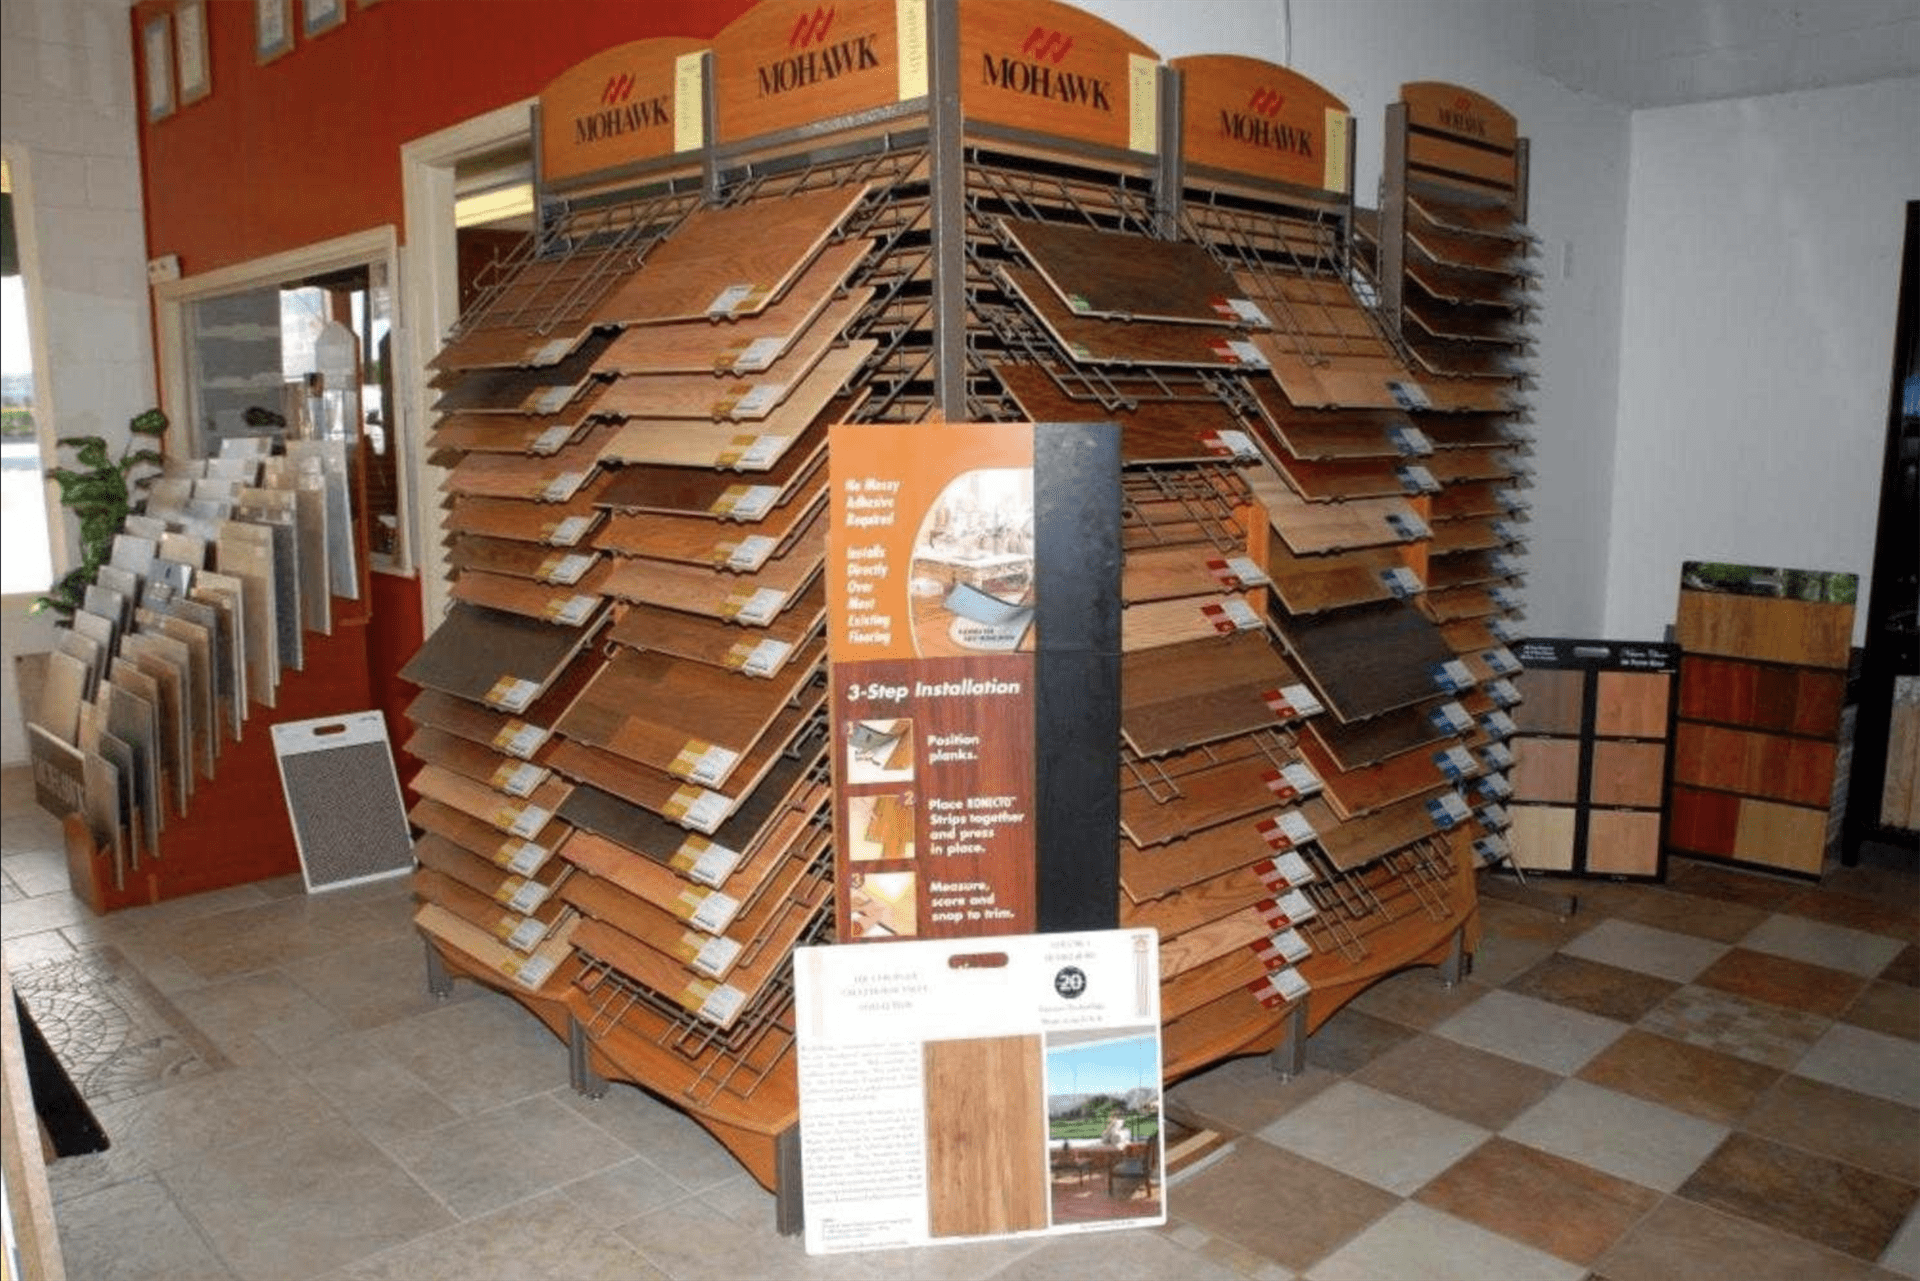 Mohawk hard surface flooring options in Estero, FL from Britt's Carpet Outlet